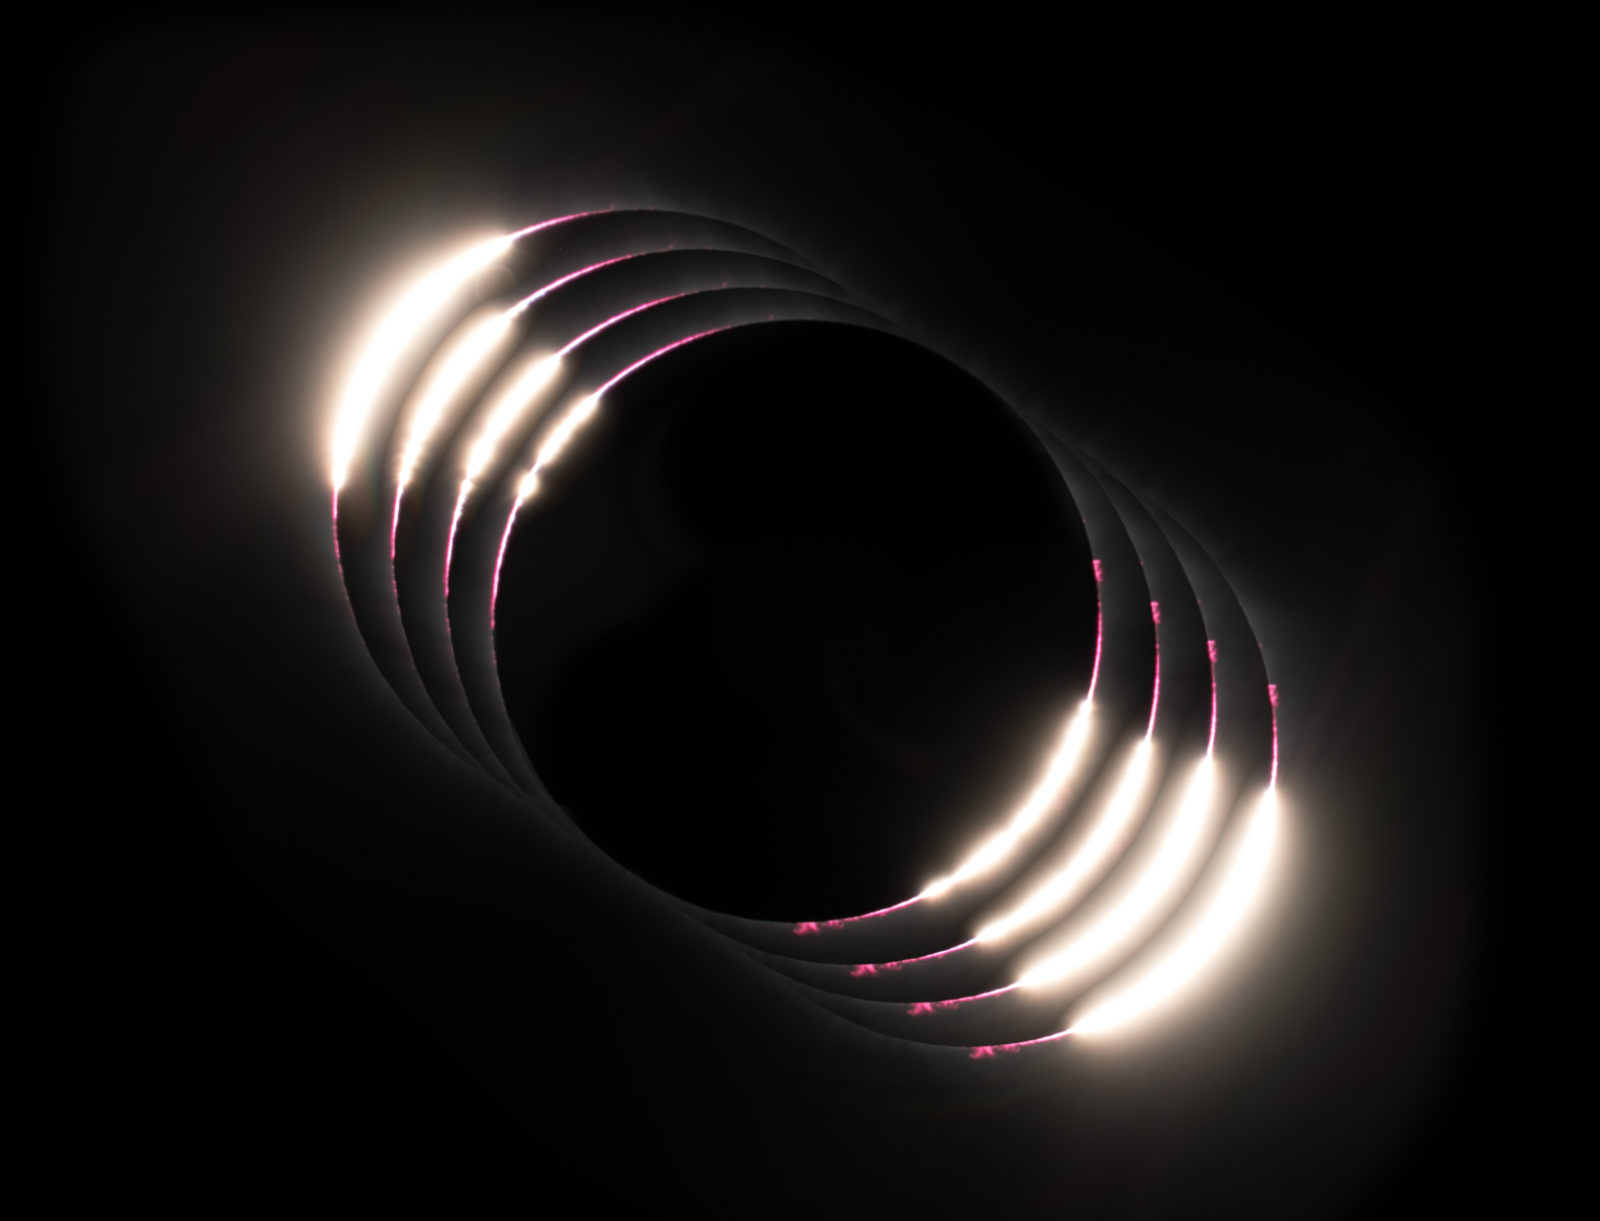 Diamond Ring Sequence